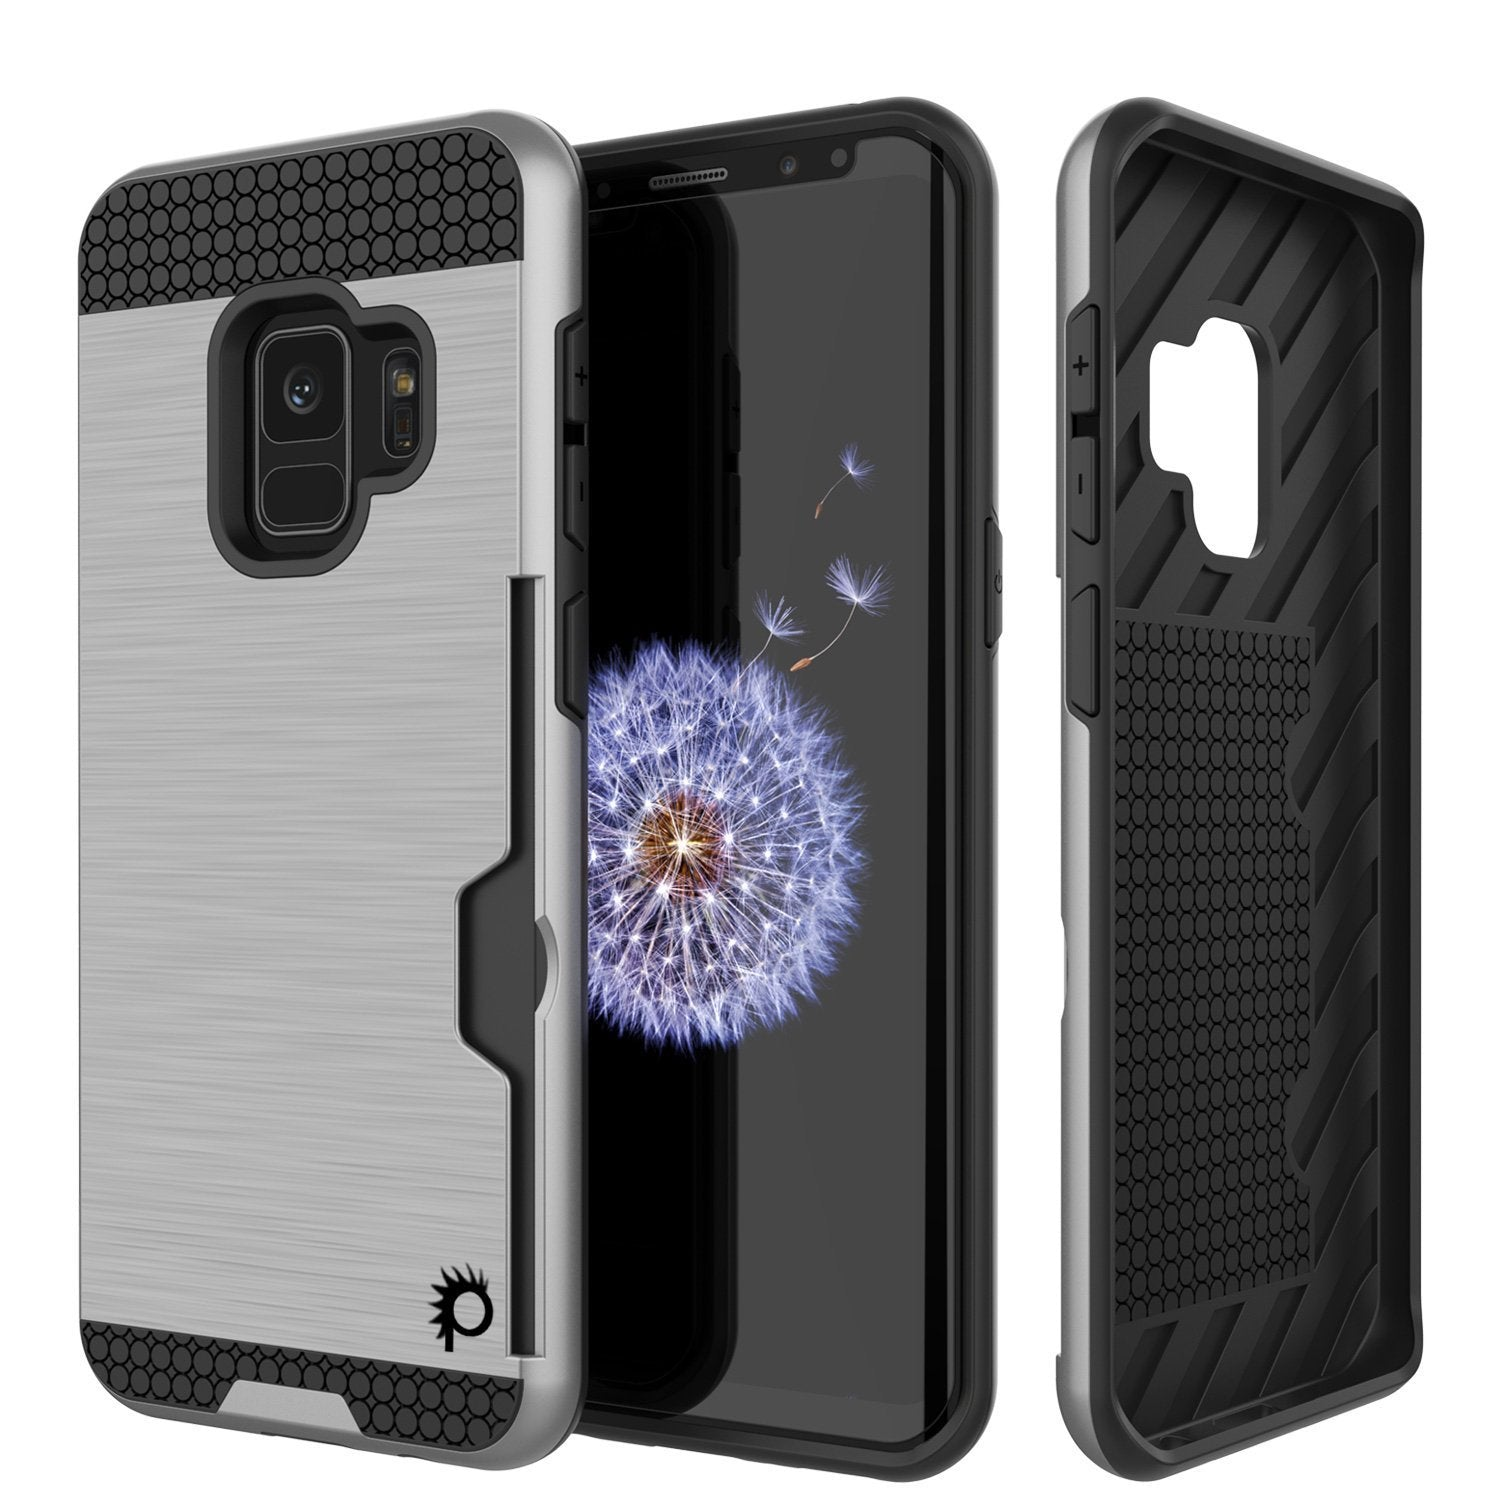 Galaxy S9 Dual-Layer, Anti-Shock, SLOT Series Slim-Fit Case [Silver]